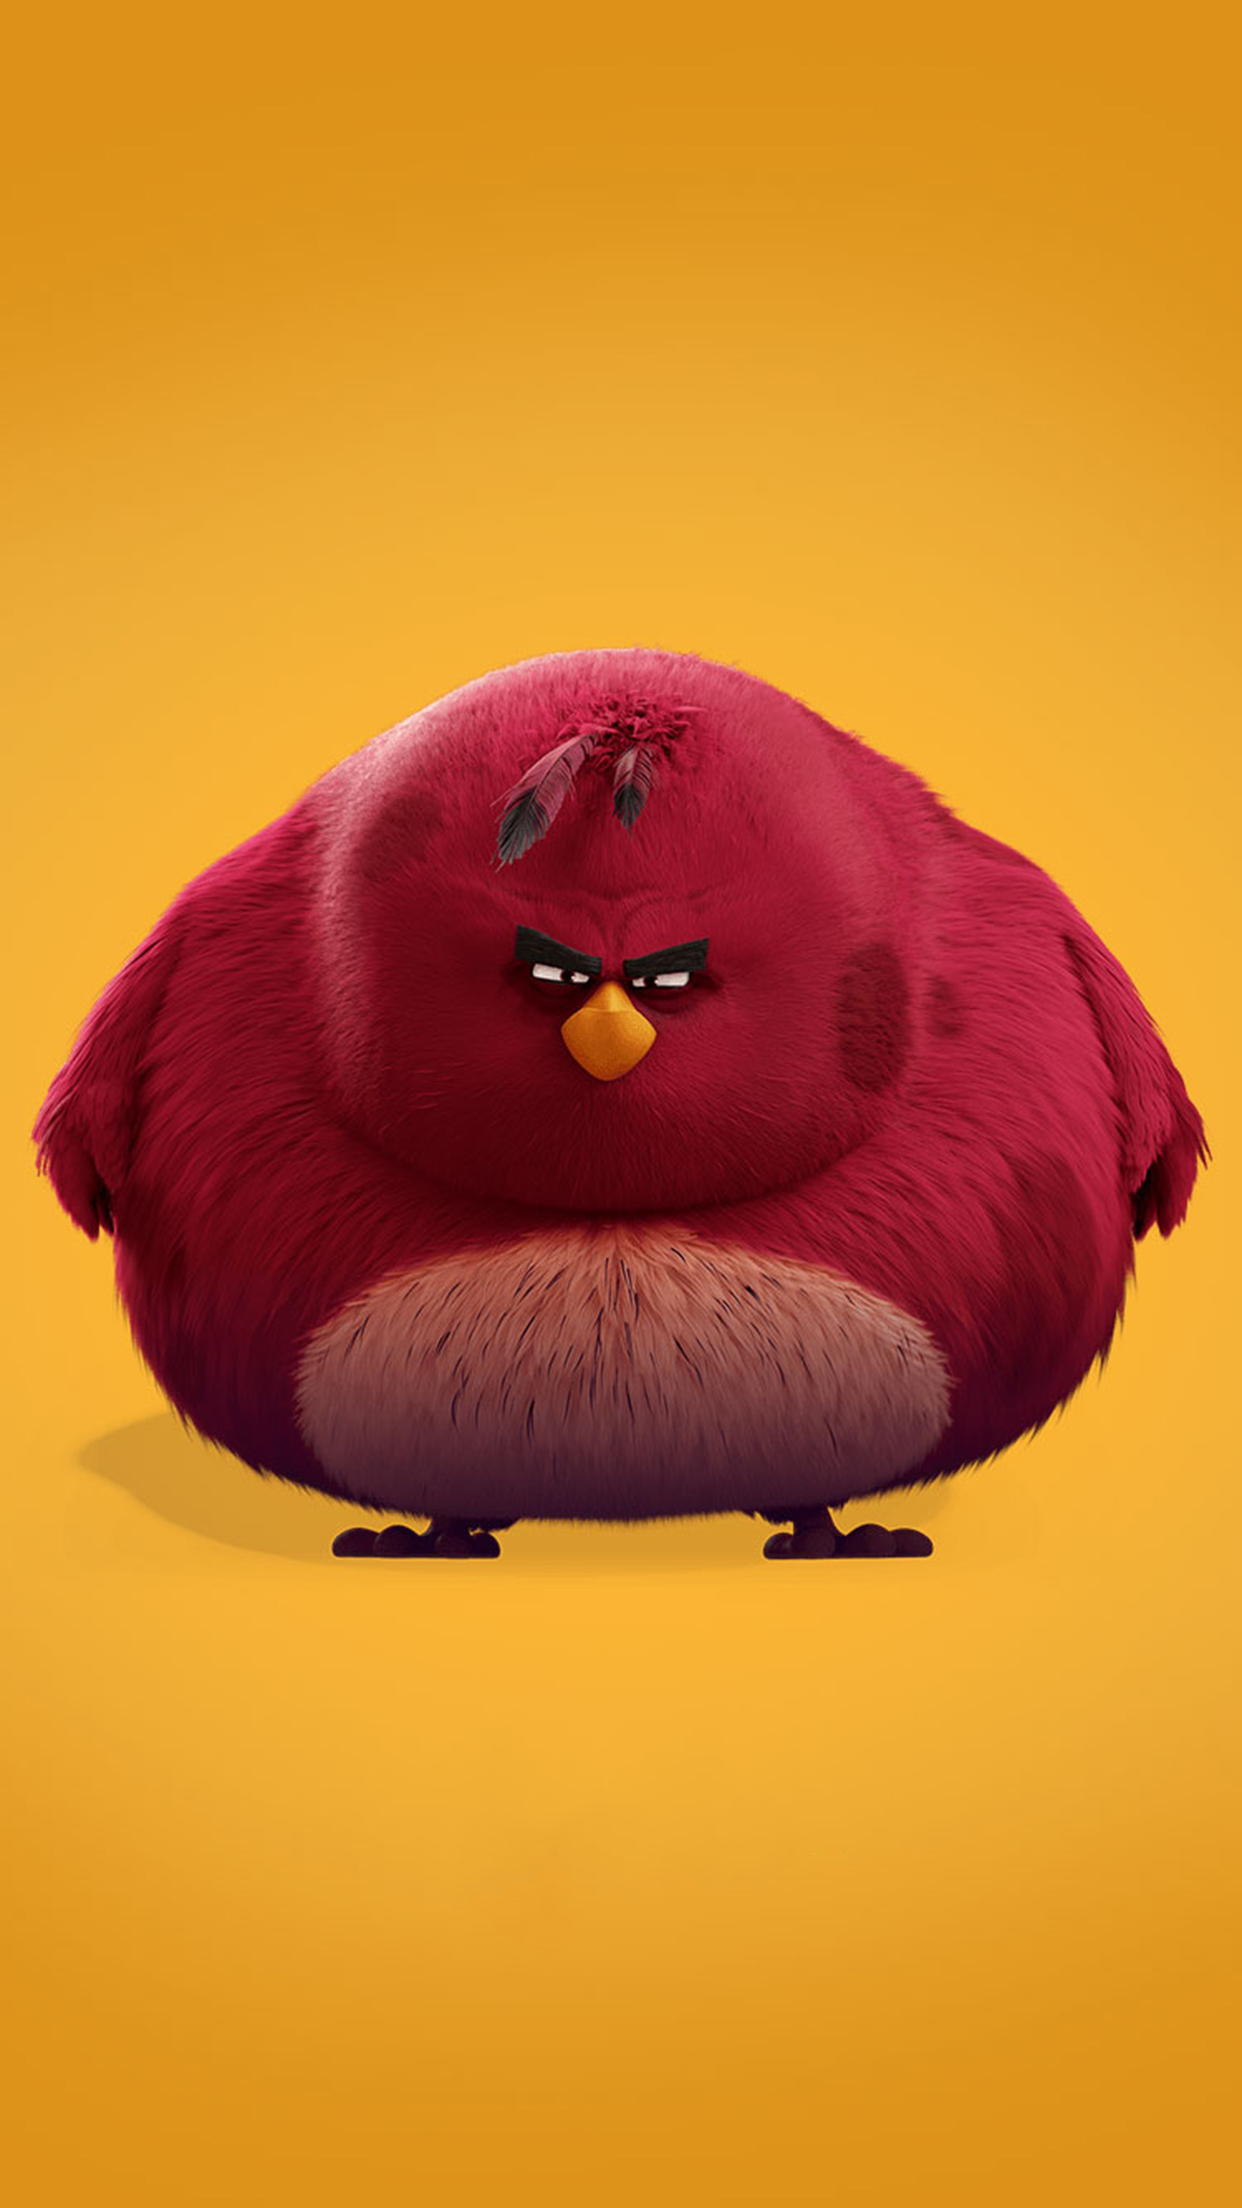 Angry Bird Terence 3Wallpapers iPhone Parallax Angry Bird Terence